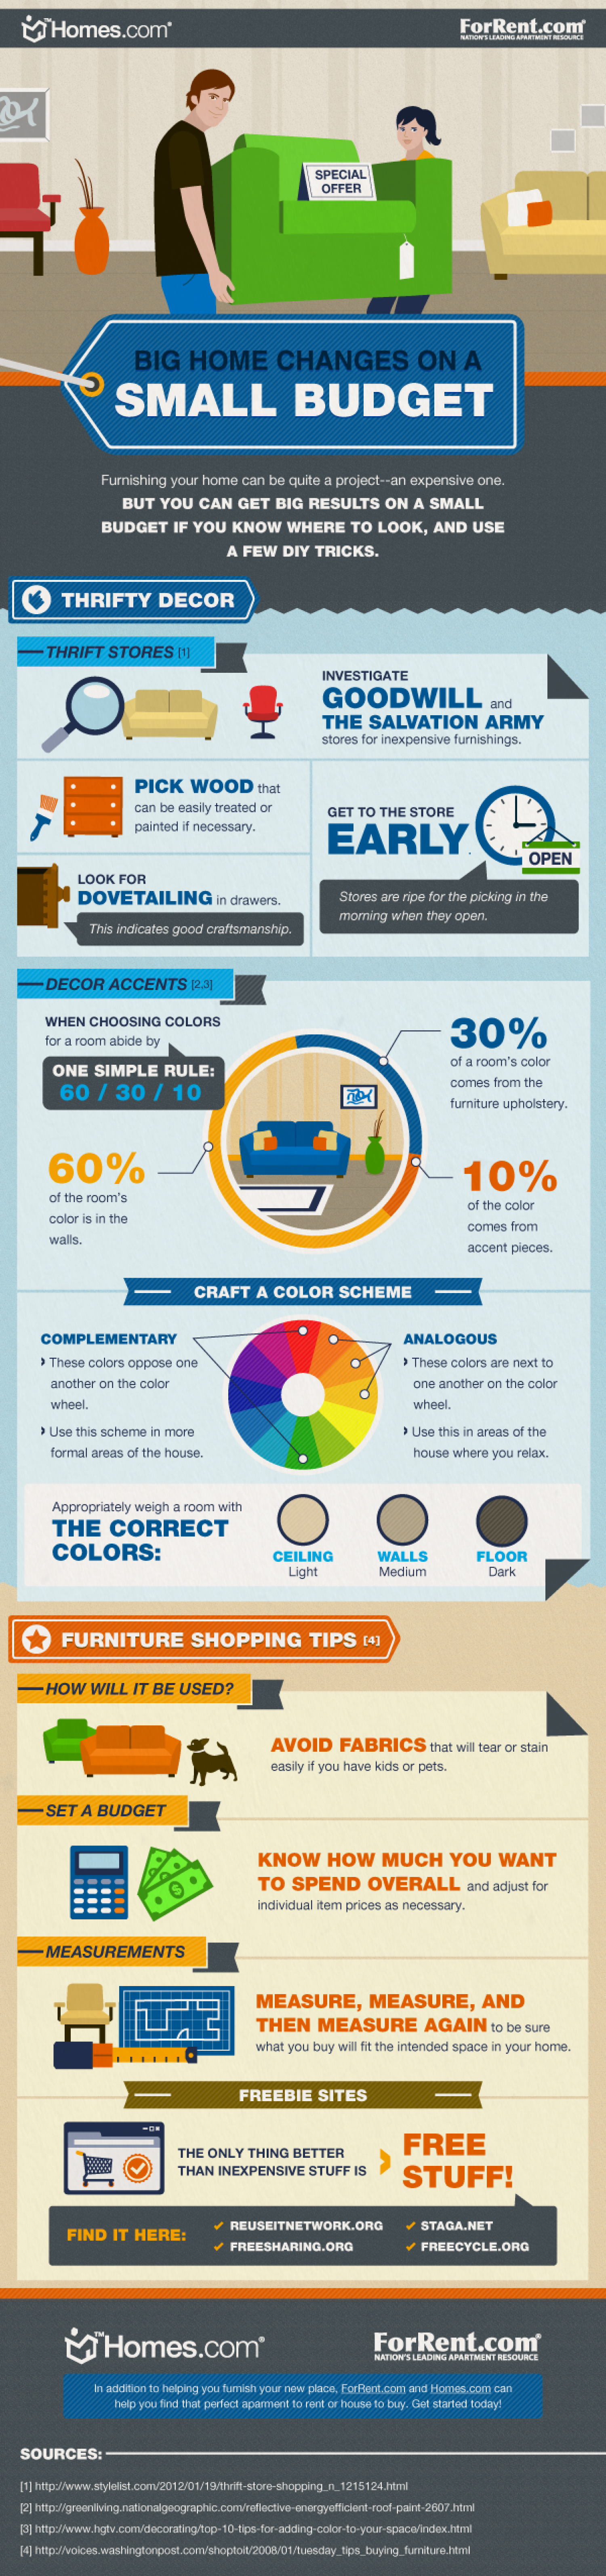 Big Home Changes on a Budget Infographic